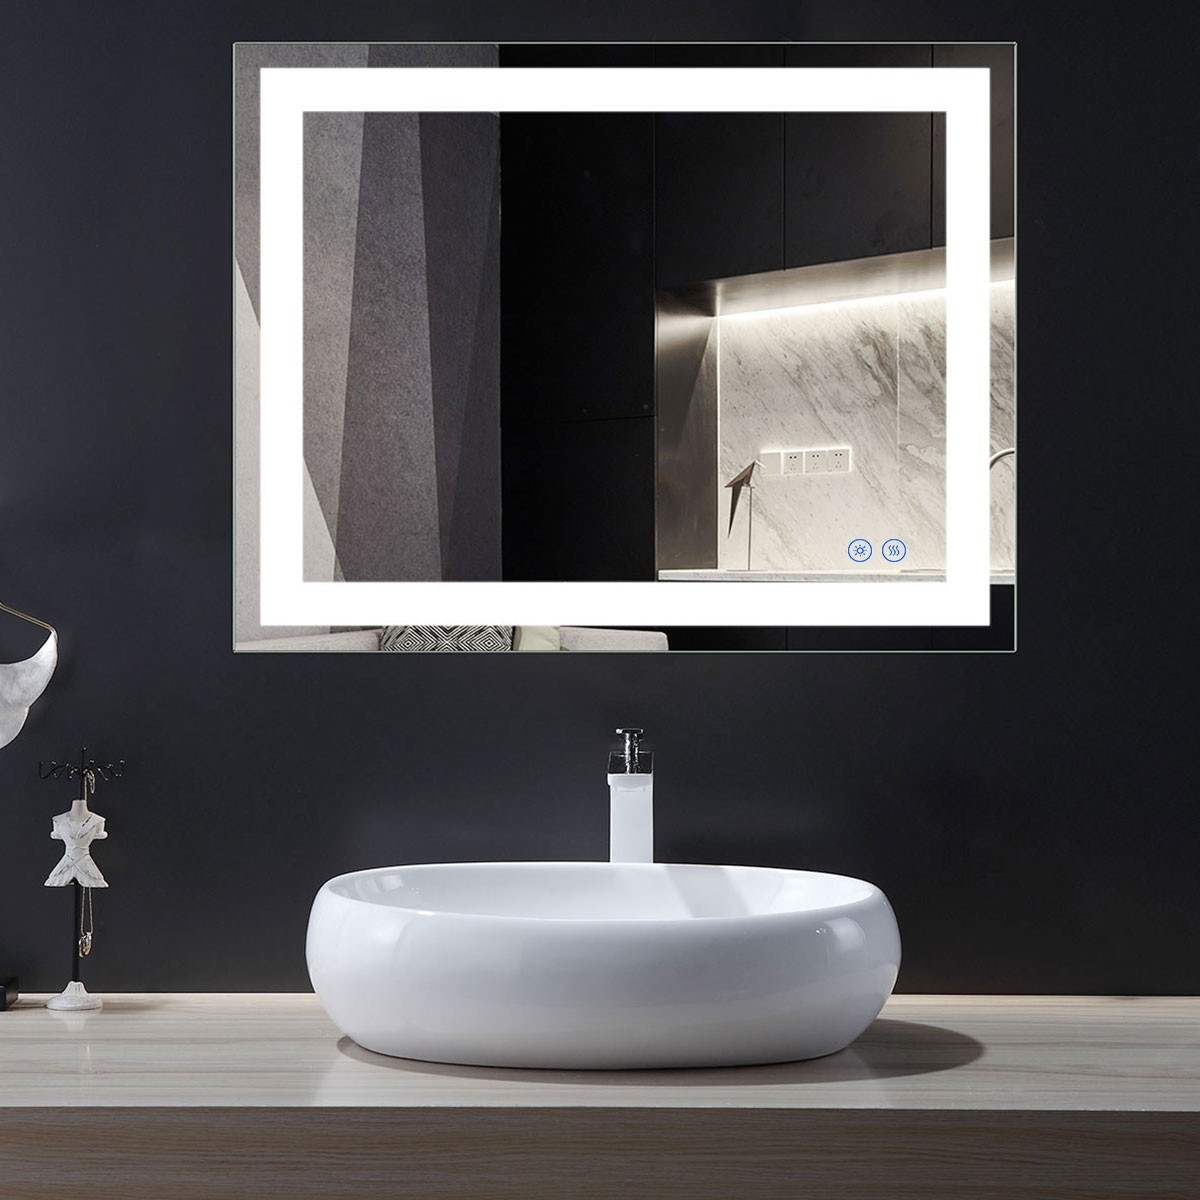 DECORAPORT 36 x 28 Inch LED Bathroom Mirror with Touch Button, Anti Fog, Dimmable, Vertical & Horizontal Mount (D213-3628)